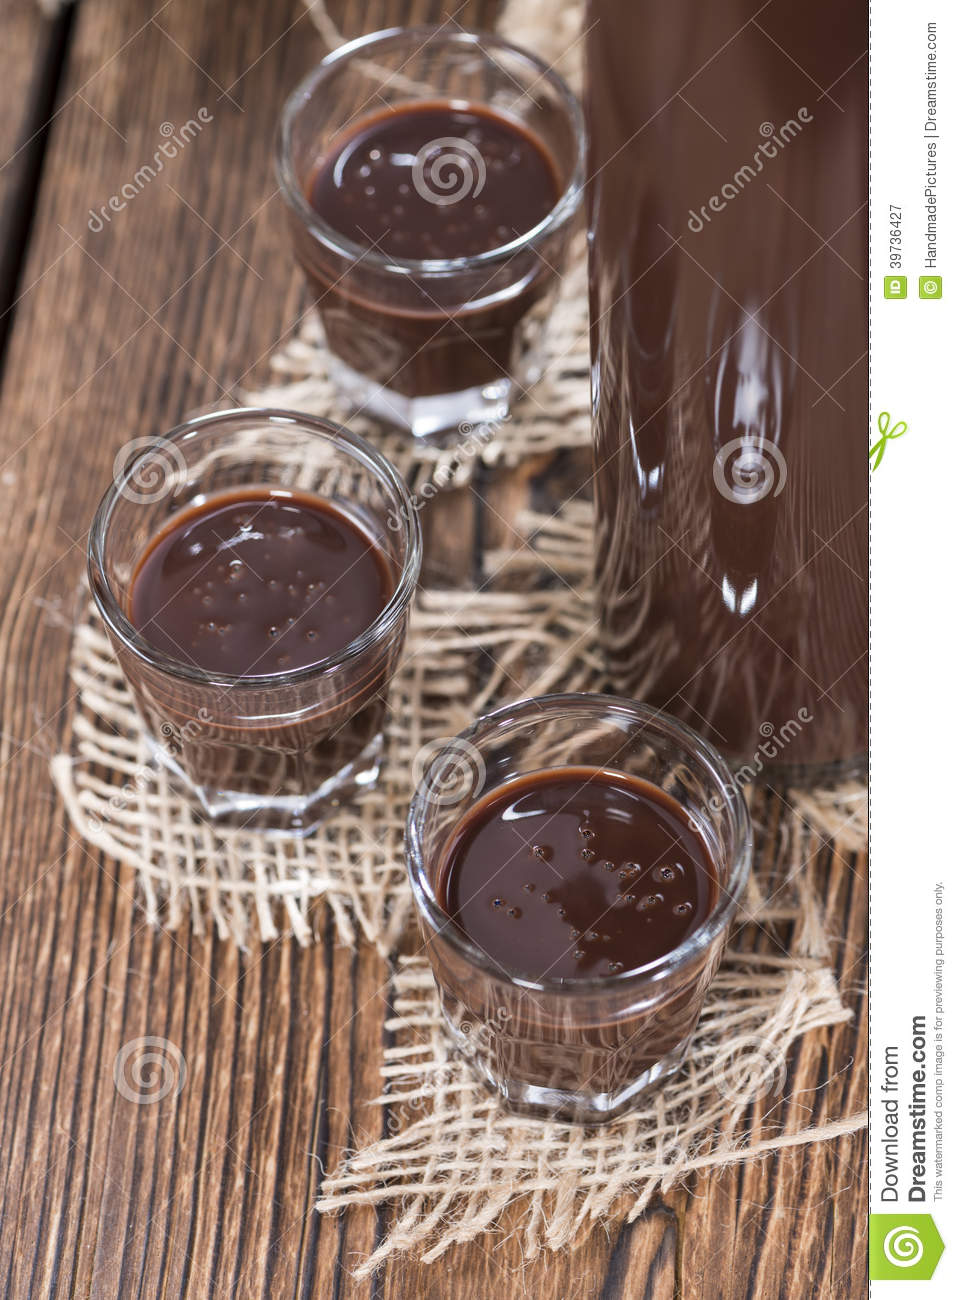 Homemade Chocolate Liqueur Stock Image | CartoonDealer.com ...